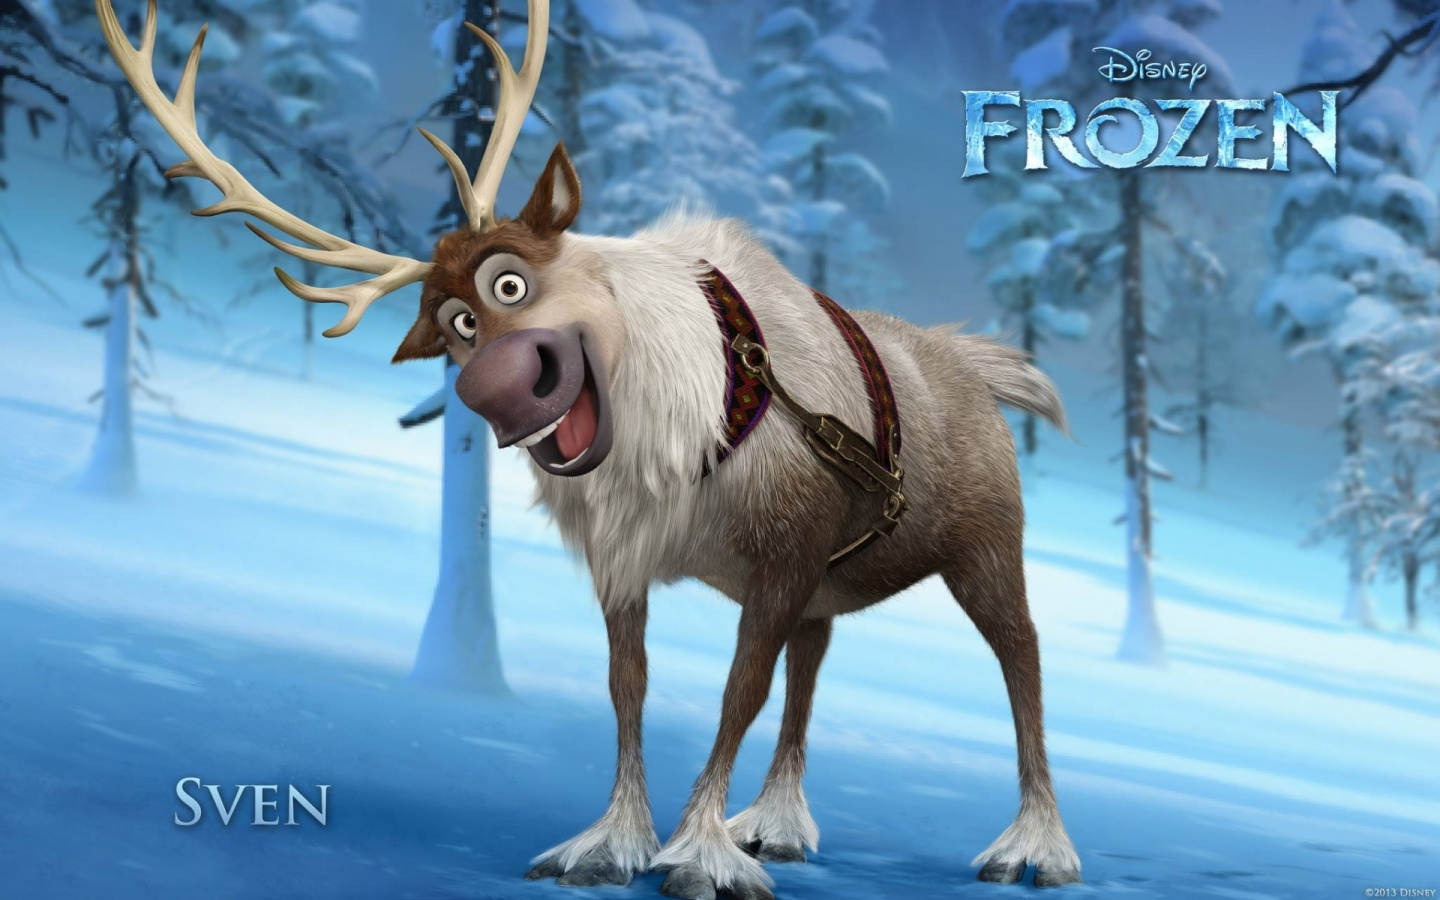 Disney Frozen 2013 Sven Wallpapers - 1440x900 - 326375 Disney Frozen Sven Wallpaper